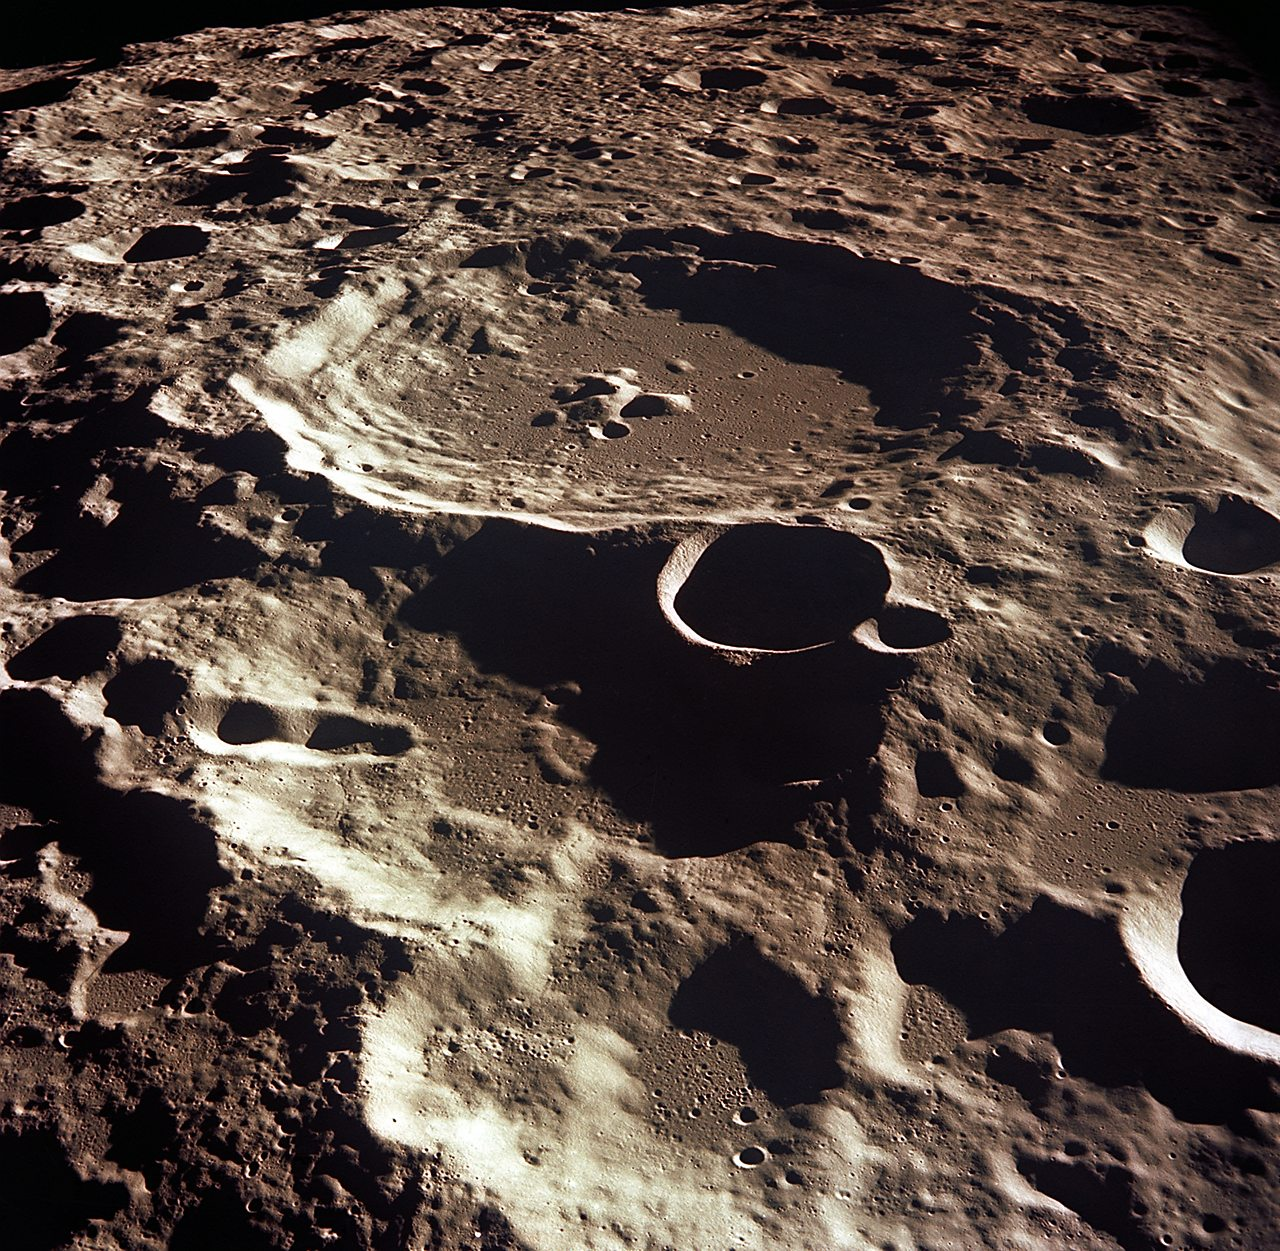 Crater 308 on the moon's surface